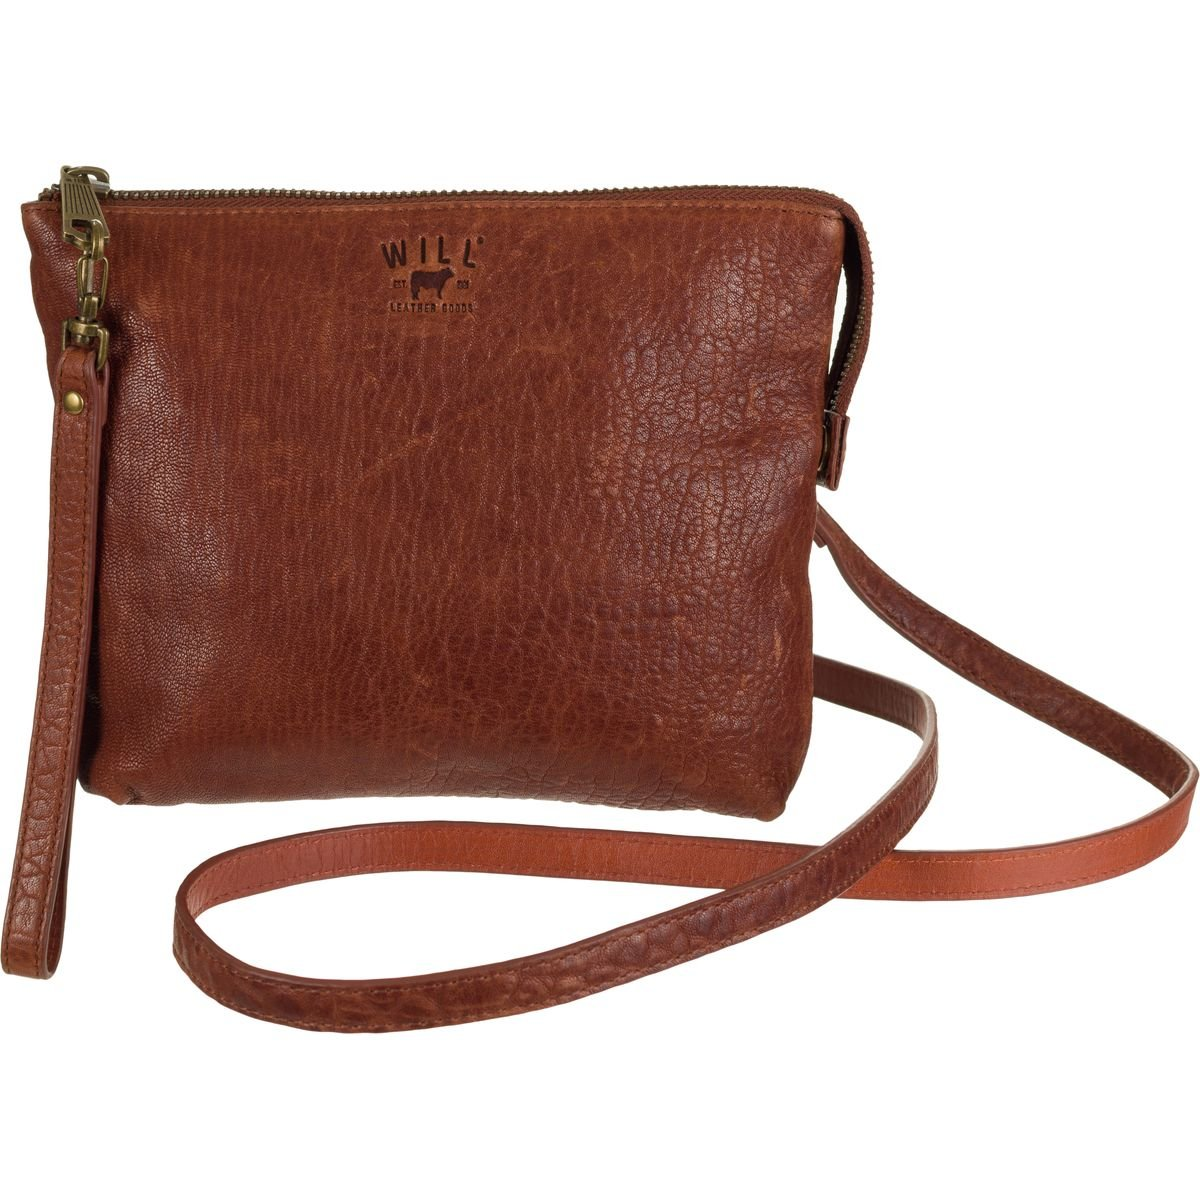 Will Leather Goods Opal Zip Pouch Crossbody Purse Cognac, One Size